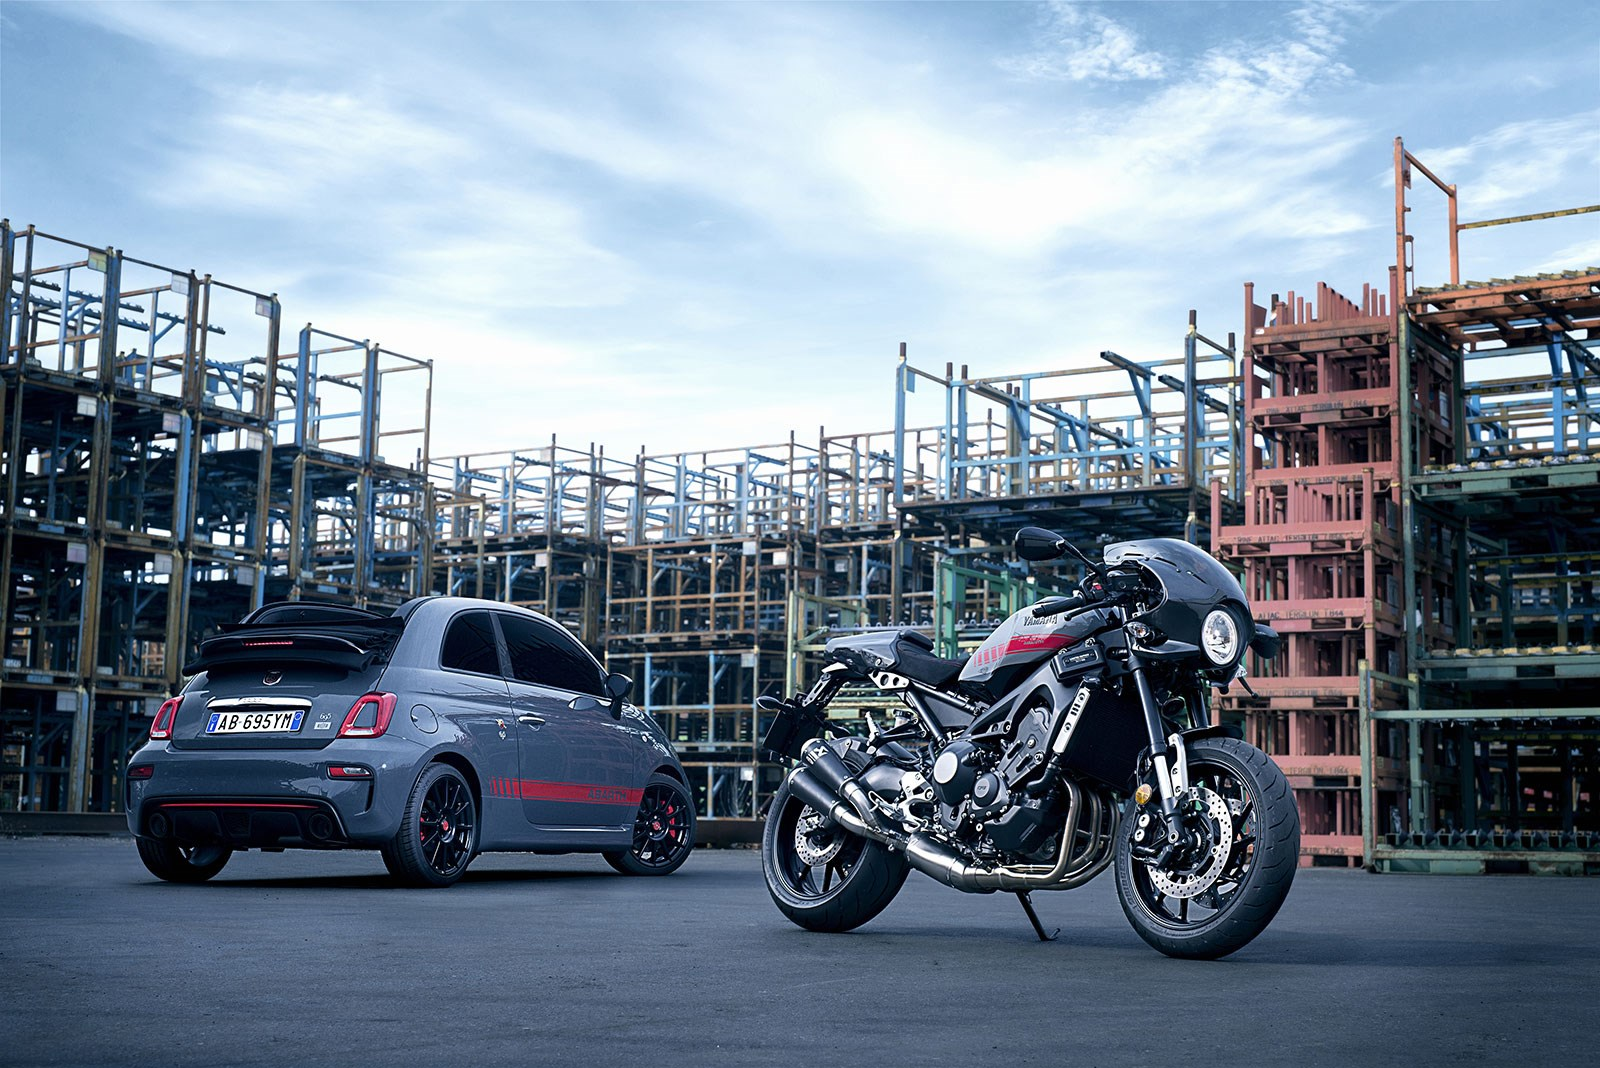 The Yamaha Xsr900 Abarth Limited Edition Pays Homage To